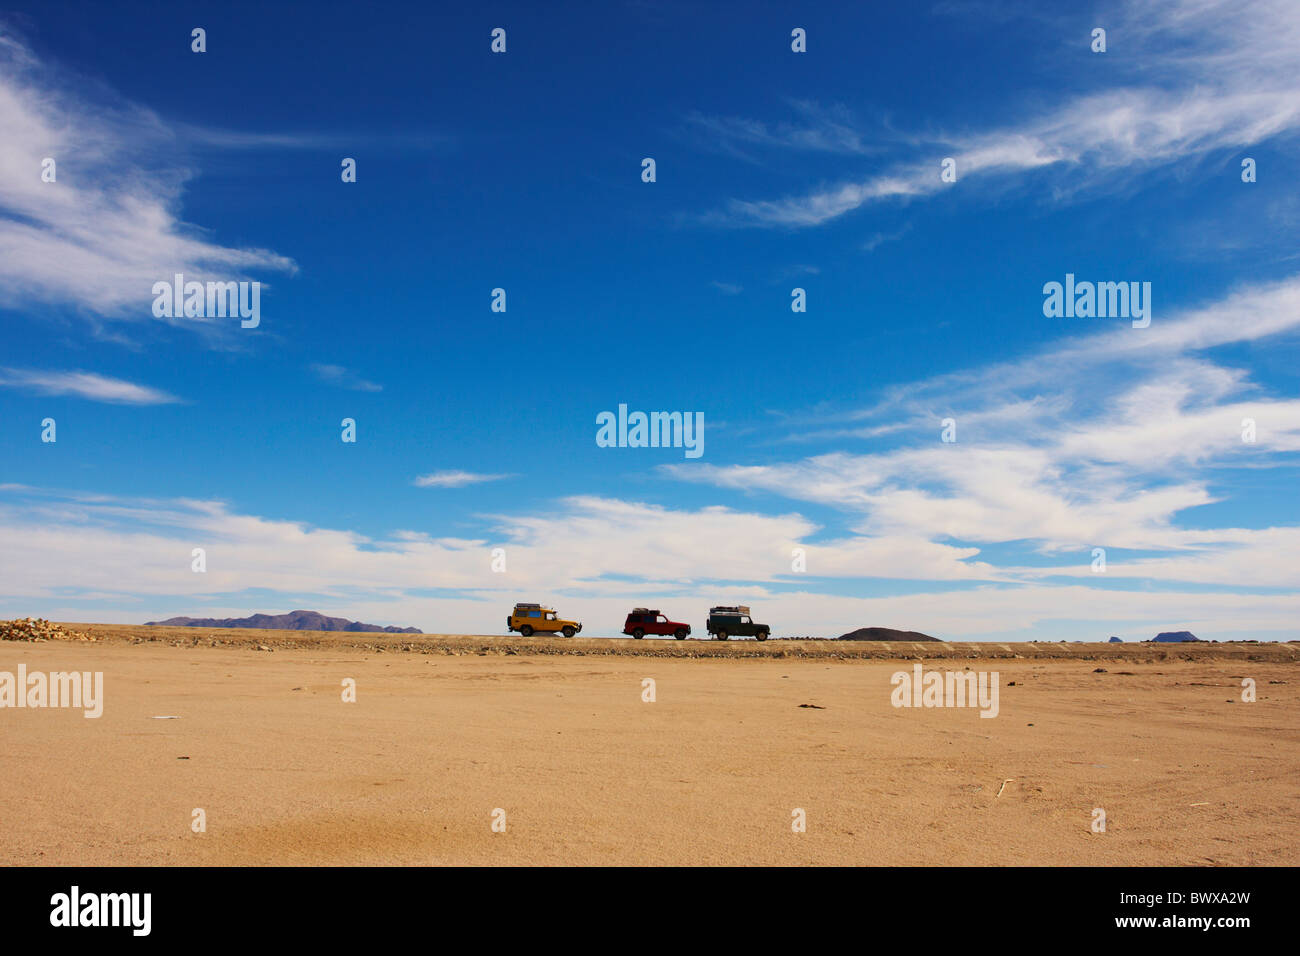 Offroad cars on a Nubian desert road in Sudan - Stock Image